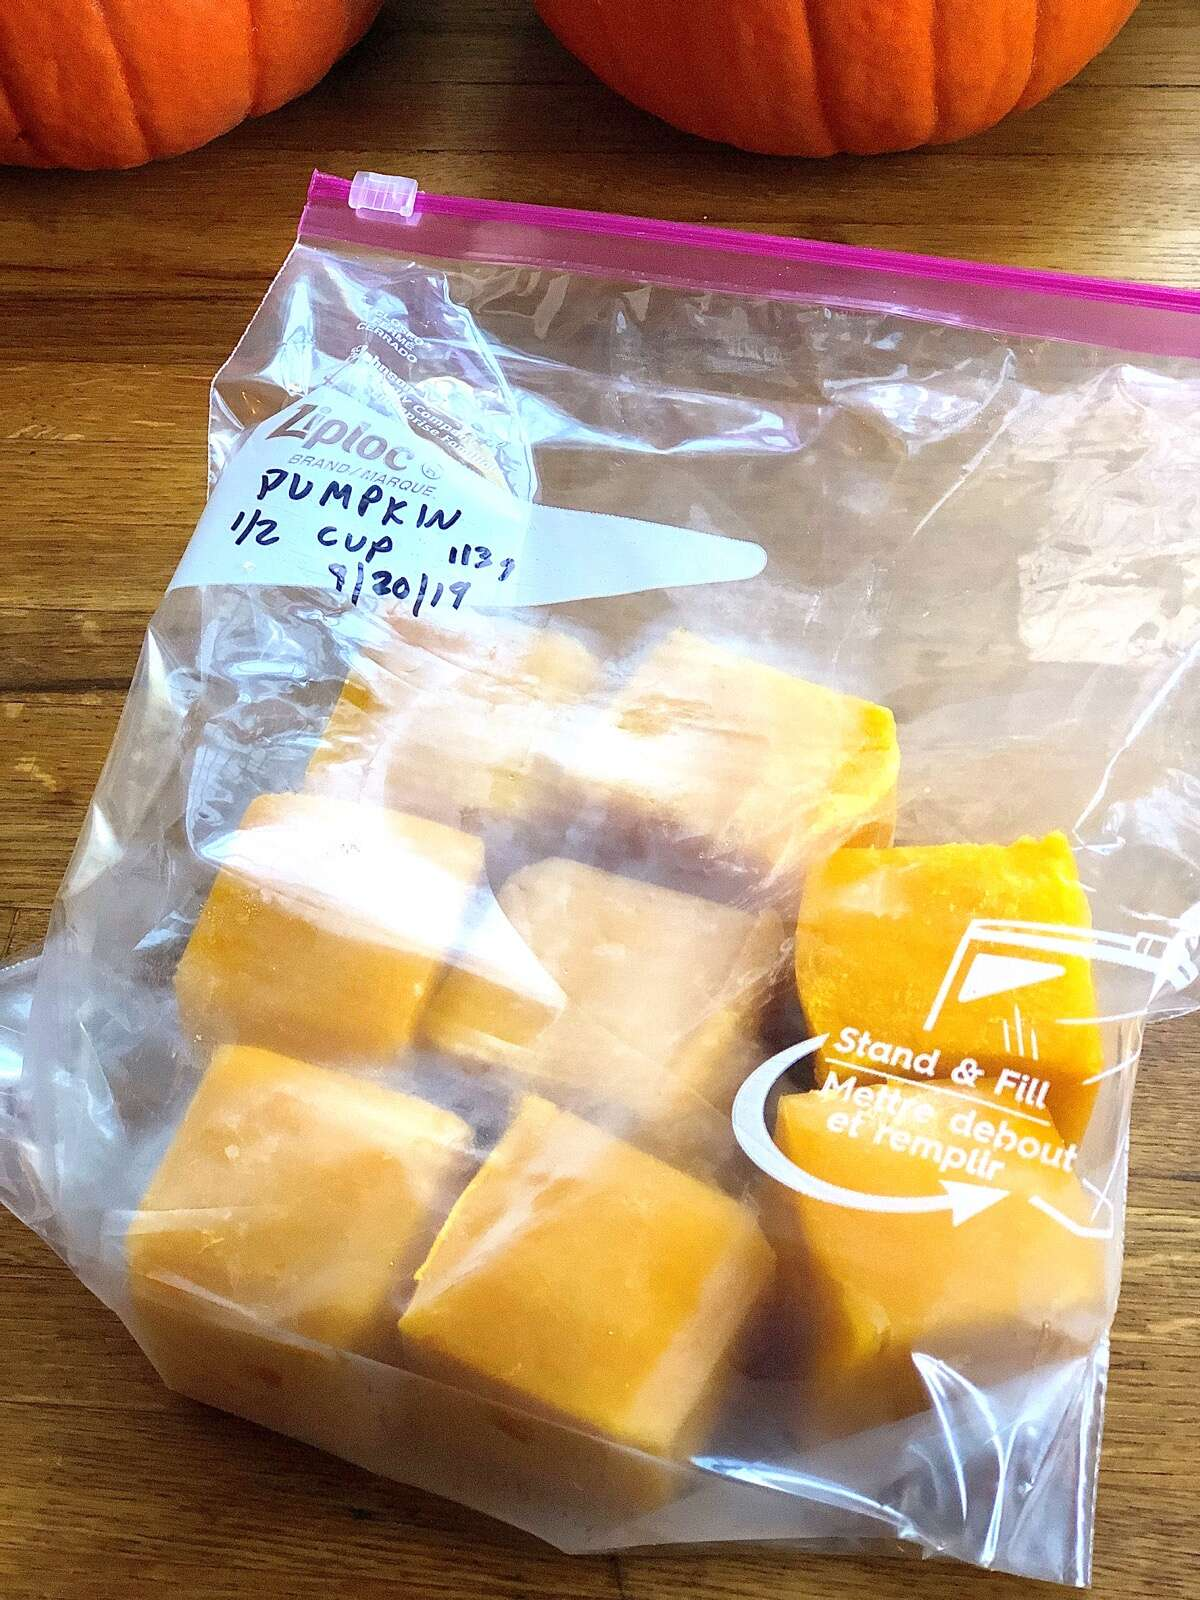 Homemade pumpkin purée frozen in cubes, placed in a labeled freezer bag